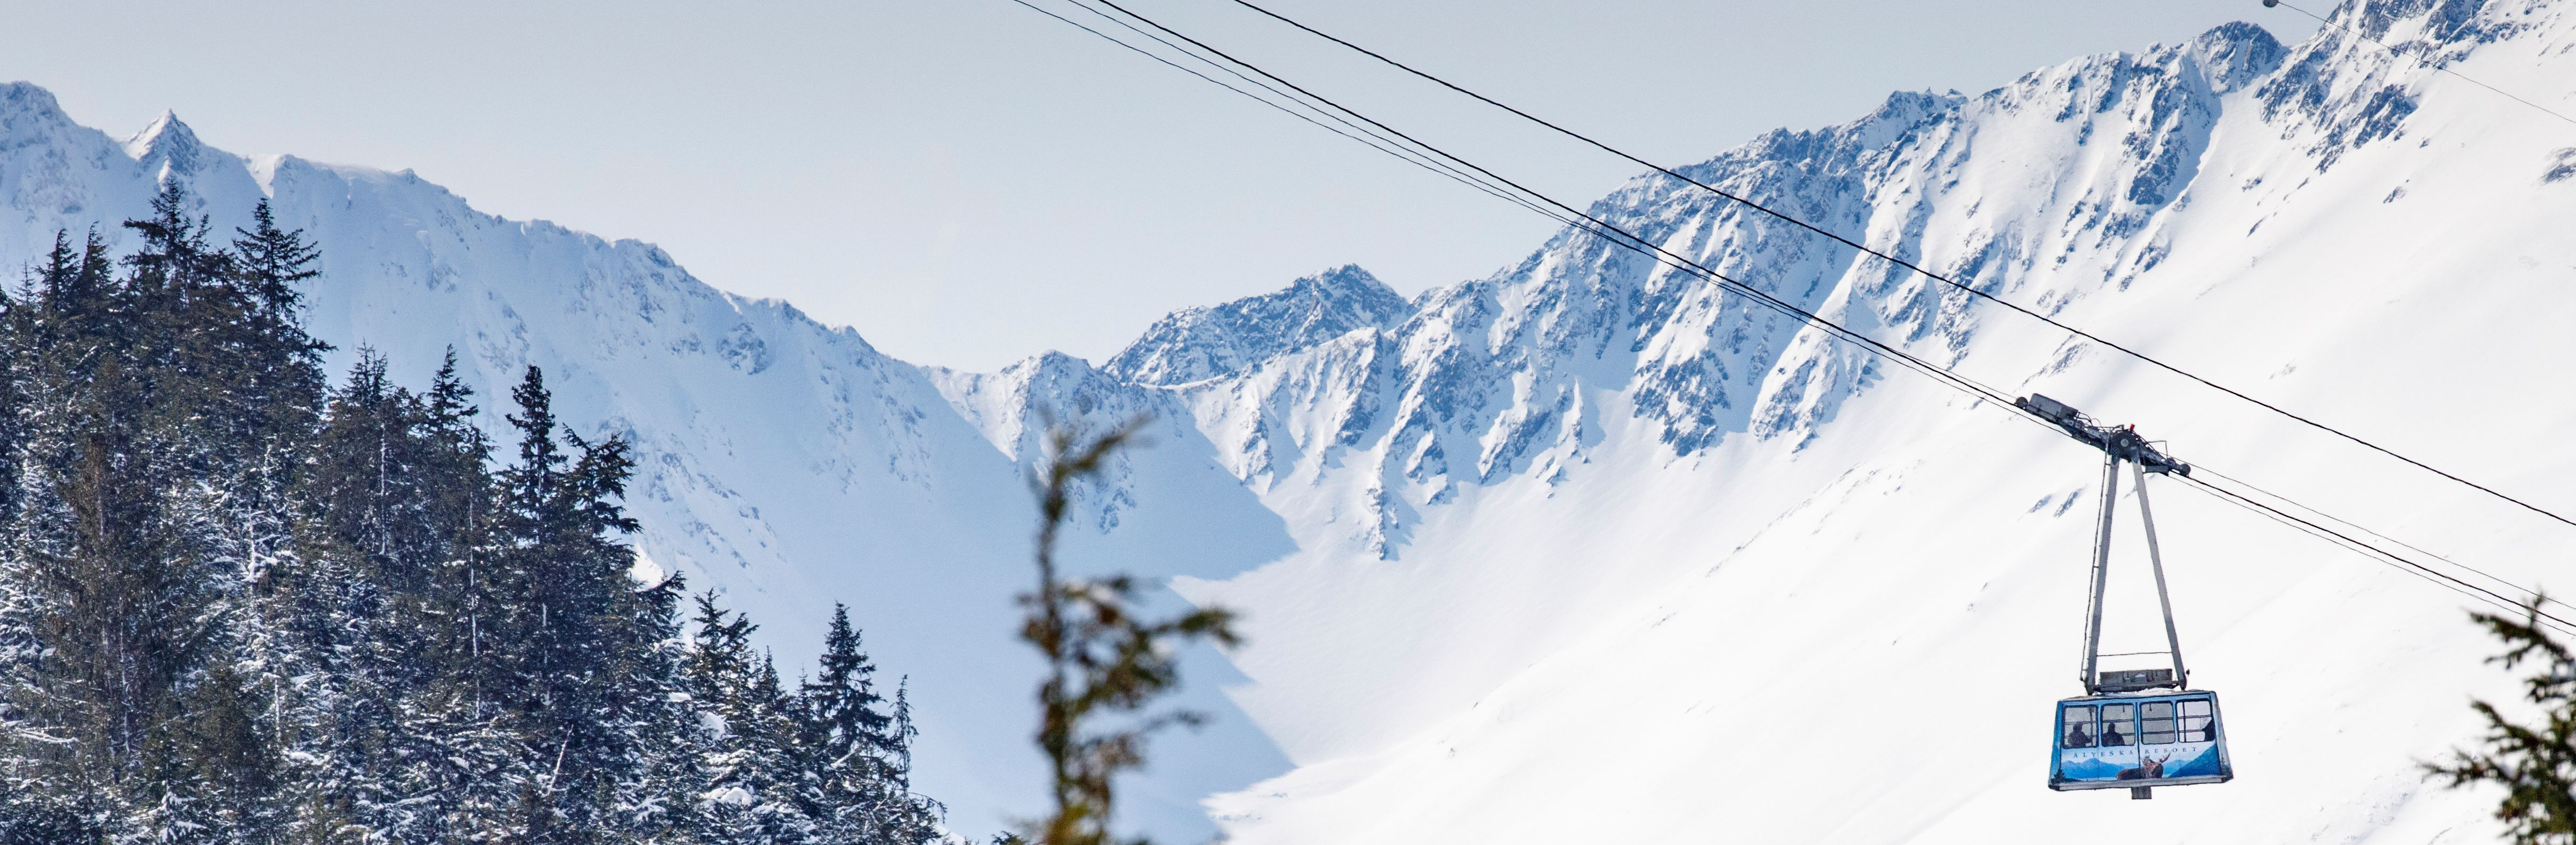 Alyeska directions from Anchorage